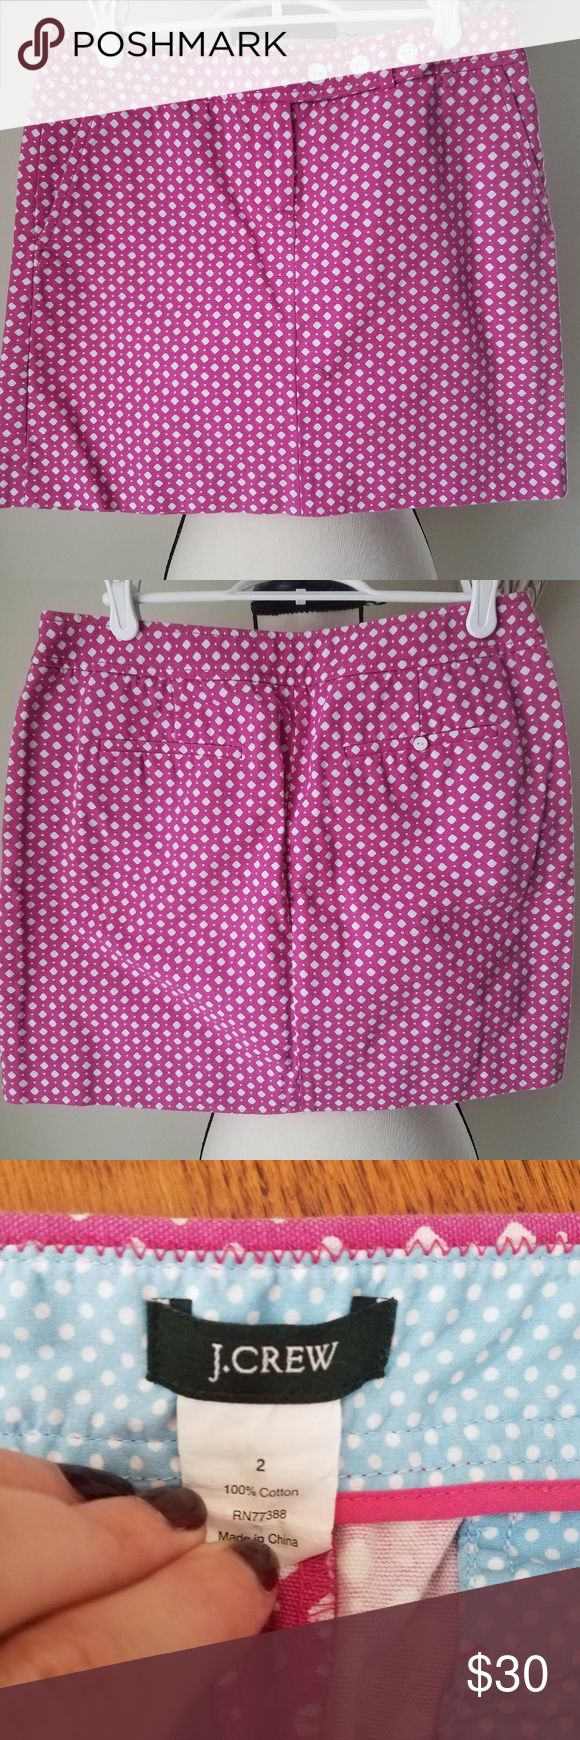 J Crew pink white geometric mini skirt size 2 Pretty pink skirt with white geometric pattern! SIZE: 2 (see pictures for measurements) CONDITION: Pre-owned, excellent condition! No flaws! ZIPPER CONDITION: Works perfectly! PATTERN/COLOR(S): Geometric, pink, white with adorable mother of pearl buttons with an anchor on them! STYLE: Mini skirt  ENVIRONMENT: Smoke-free but pet-friendly FABRIC & CARE: 100% cotton; machine wash cold, tumble dry low, warm iron  STYLING: Polka dot and small floral…